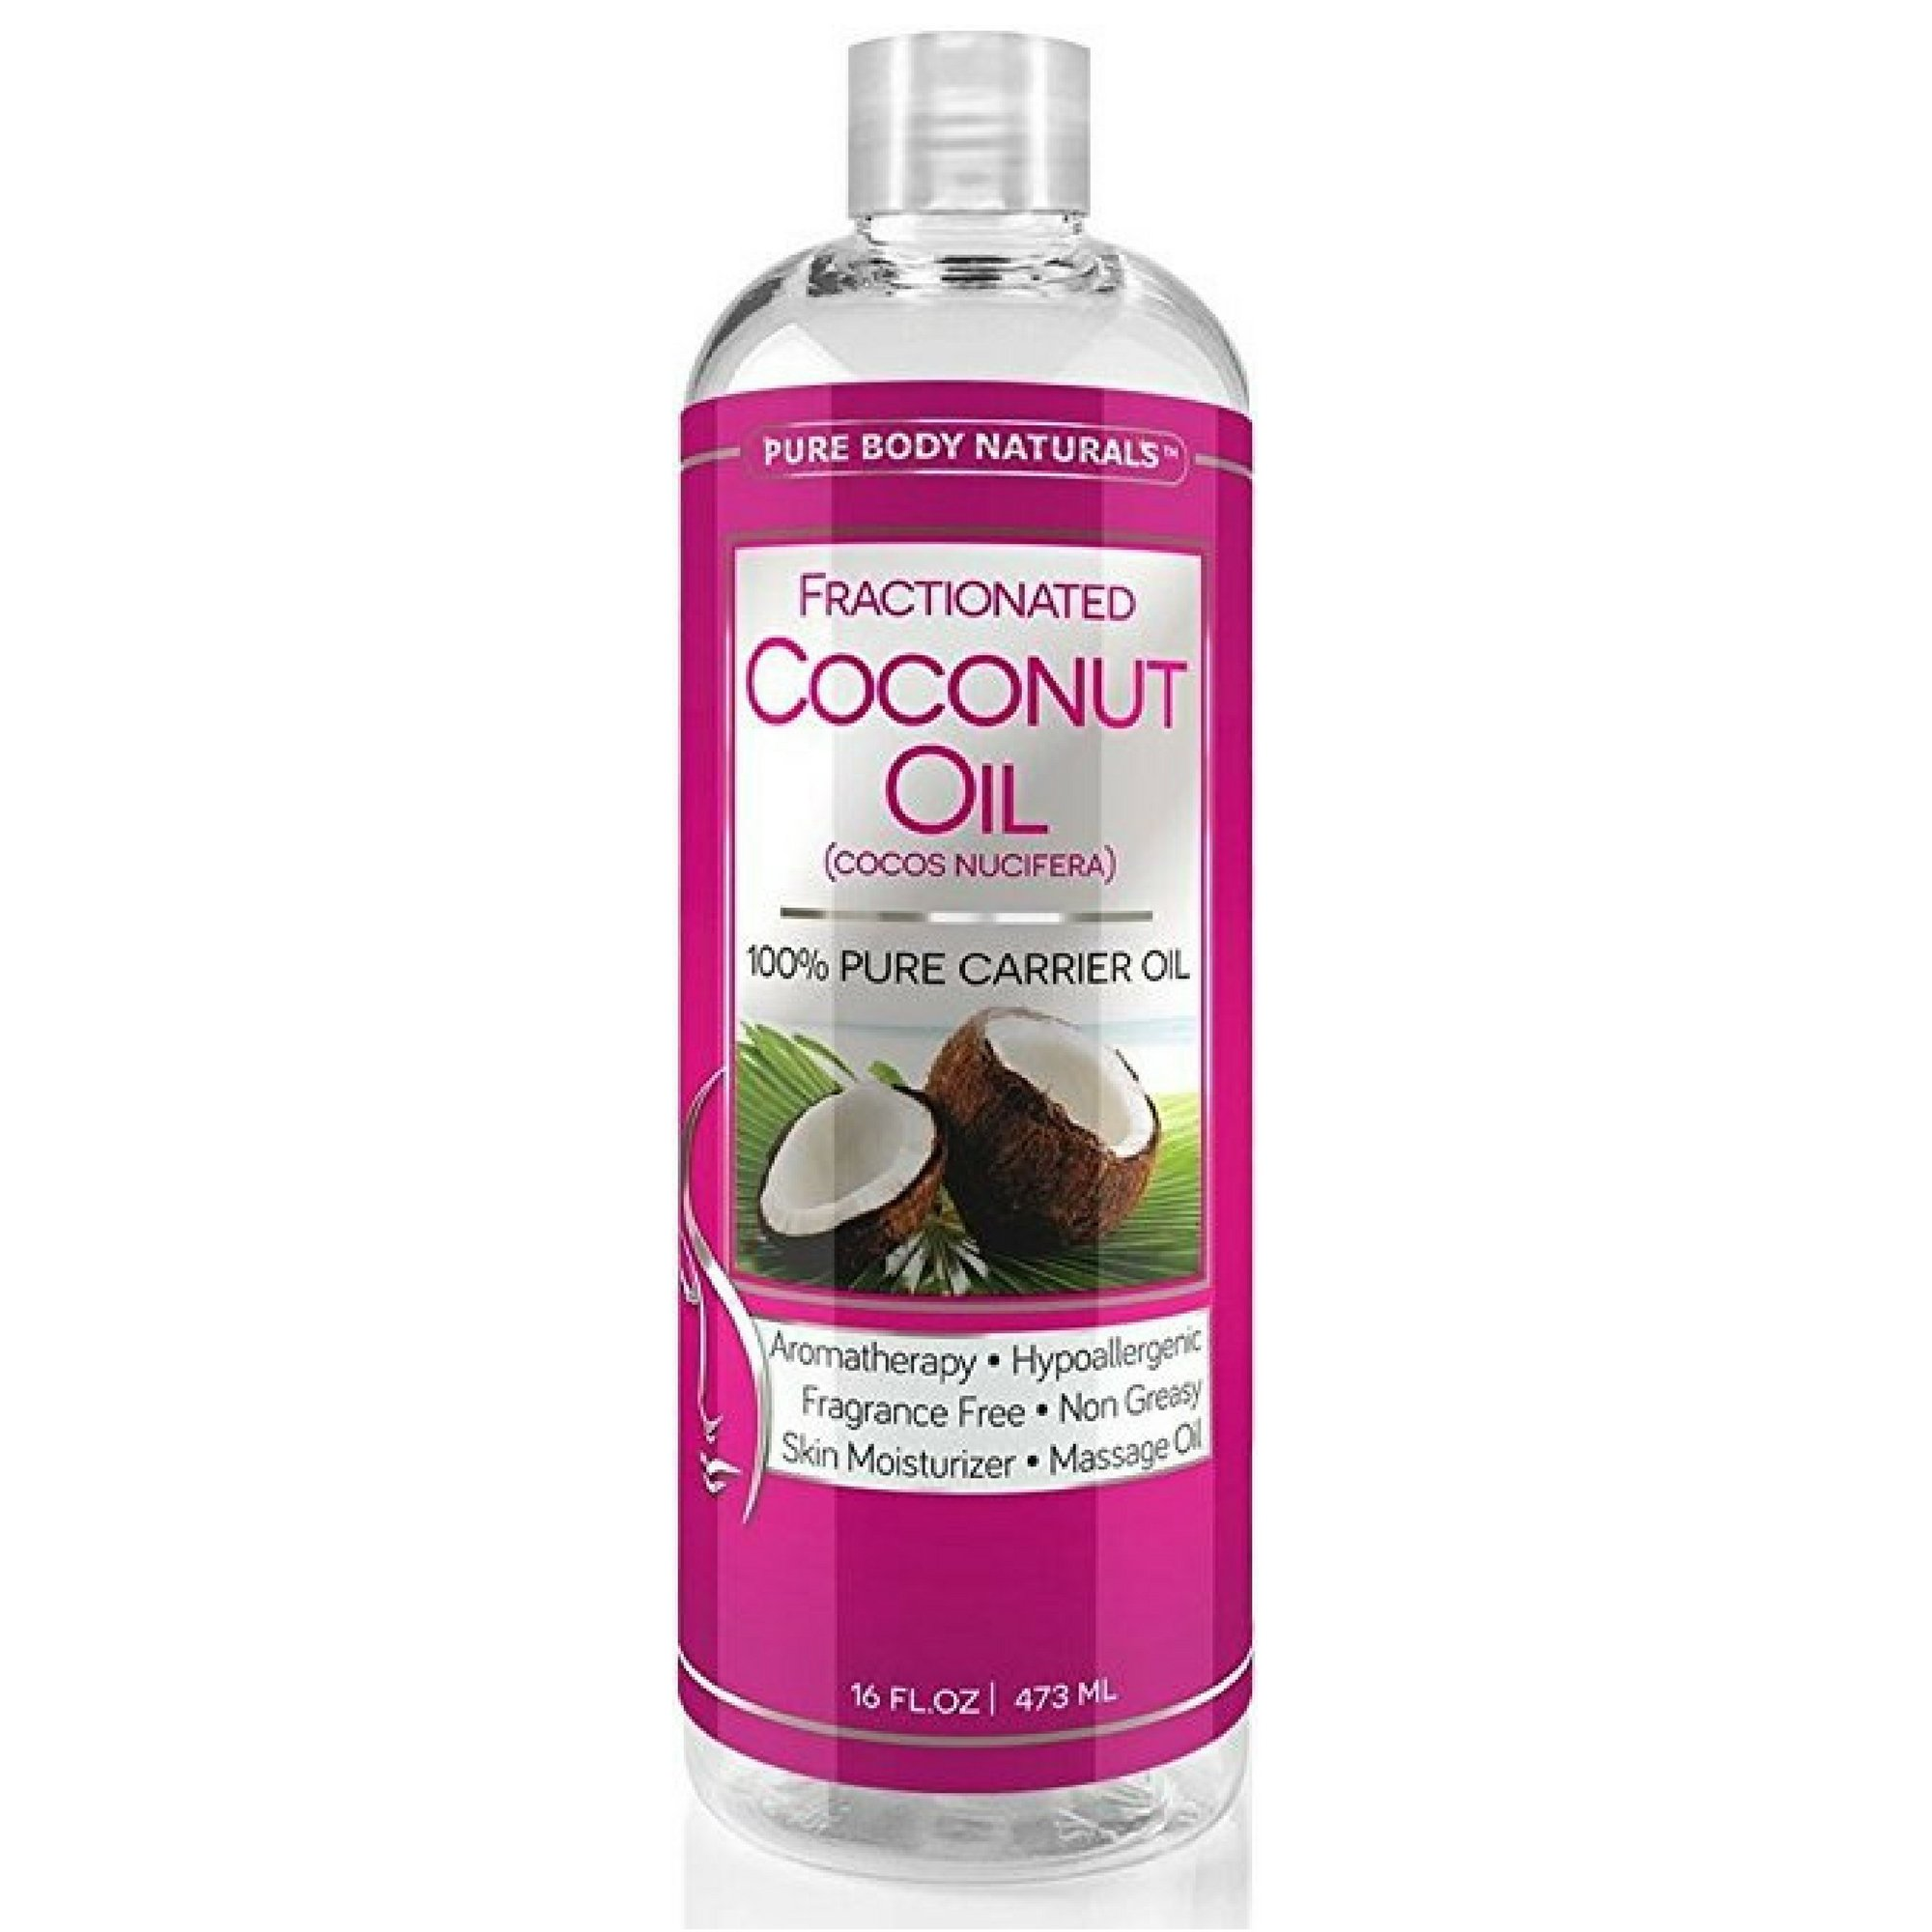 Fractionated Coconut Oil for Hair and Skin, 100% Natural and Pure, Liquid Aromatherapy Carrier Oil for Diluting Essential Oils, Hair Growth & Skin Moisturizer, Great for DIY by Pure Body Naturals